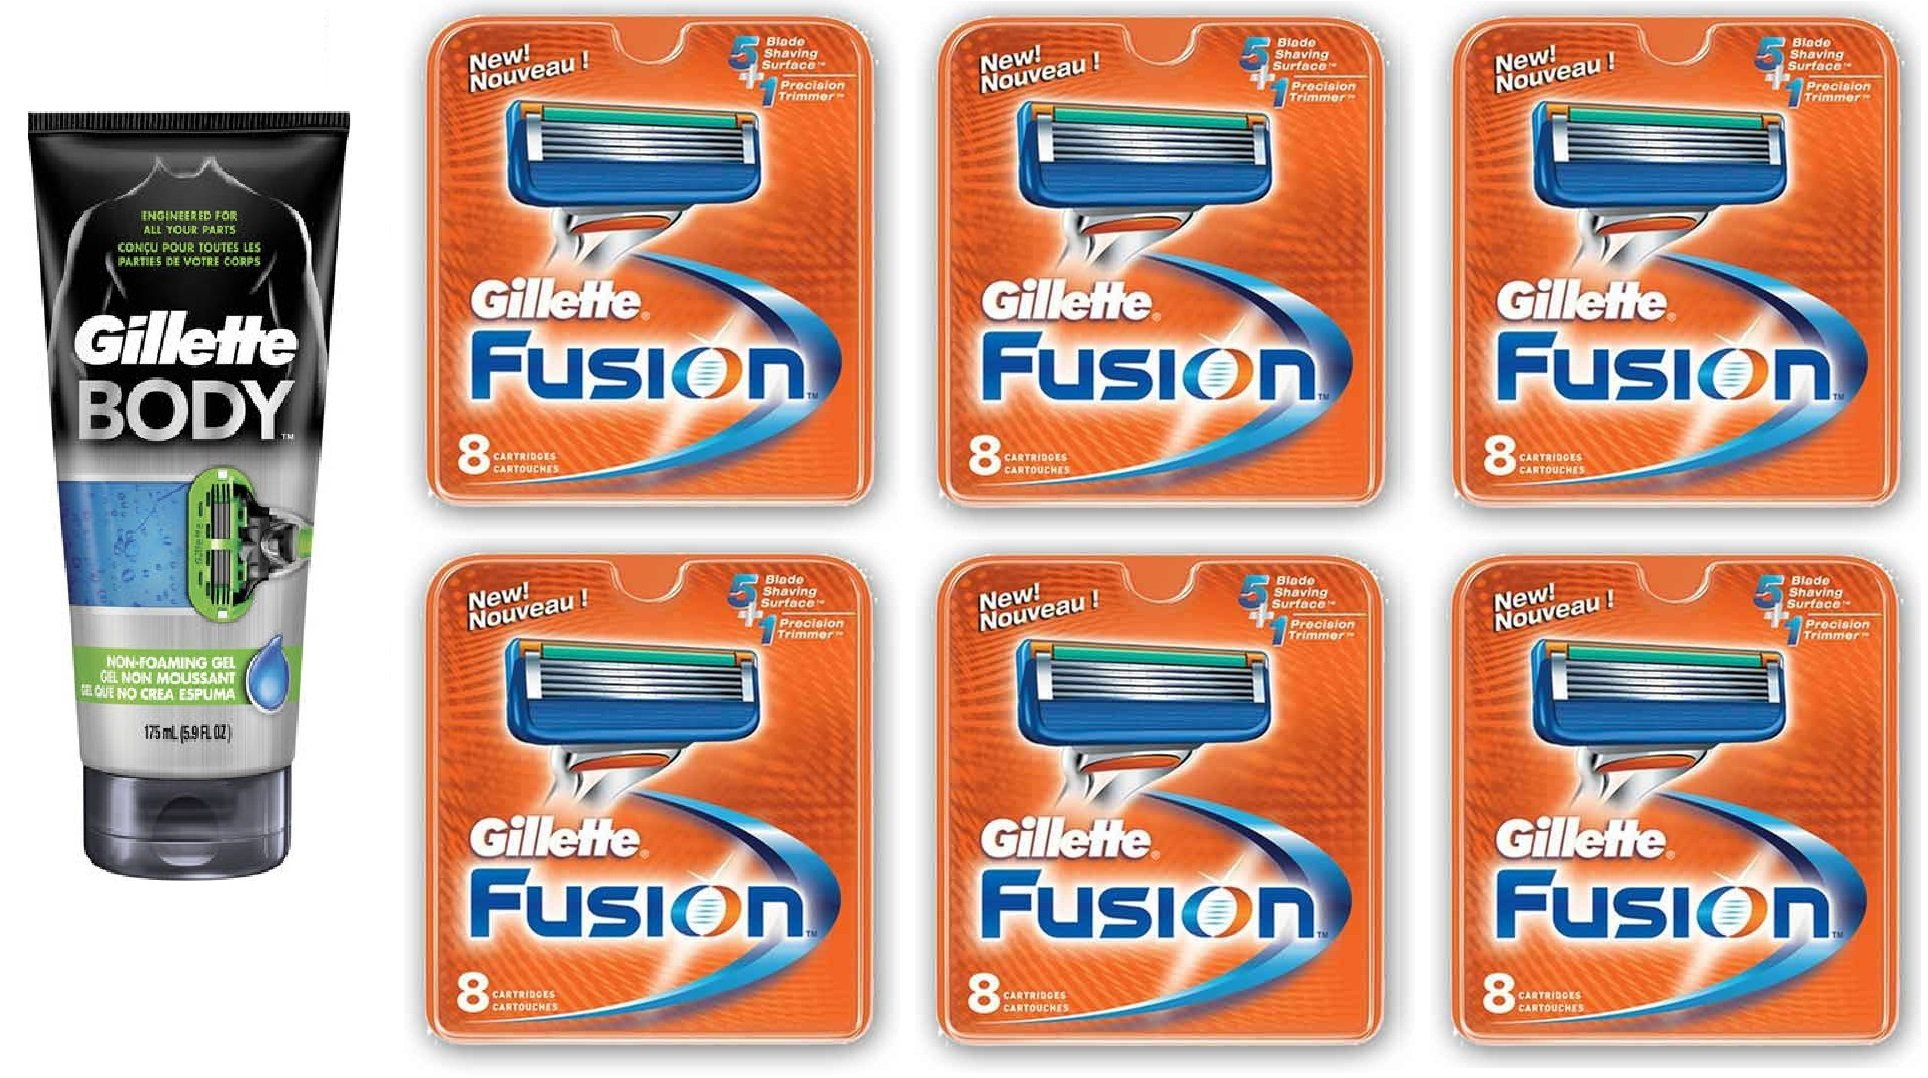 Gillette Body Non Foaming Shave Gel for Men, 5.9 Fl Oz + Fusion Refill Blades 8 Ct (6 Pack) + FREE Assorted Purse Kit/Cosmetic Bag Bonus Gift